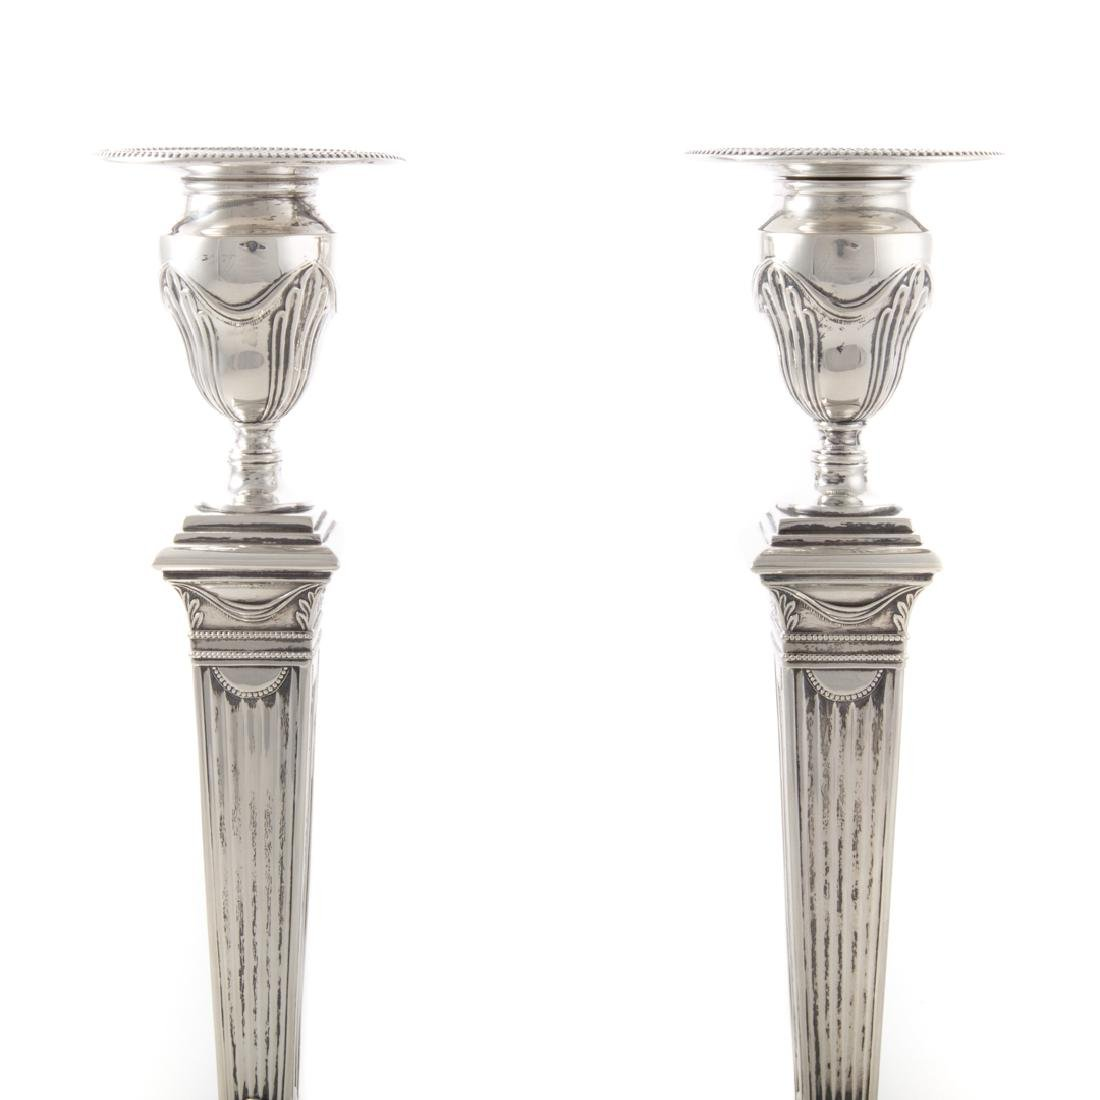 Pair of Tiffany & Co. sterling silver candlesticks - 2